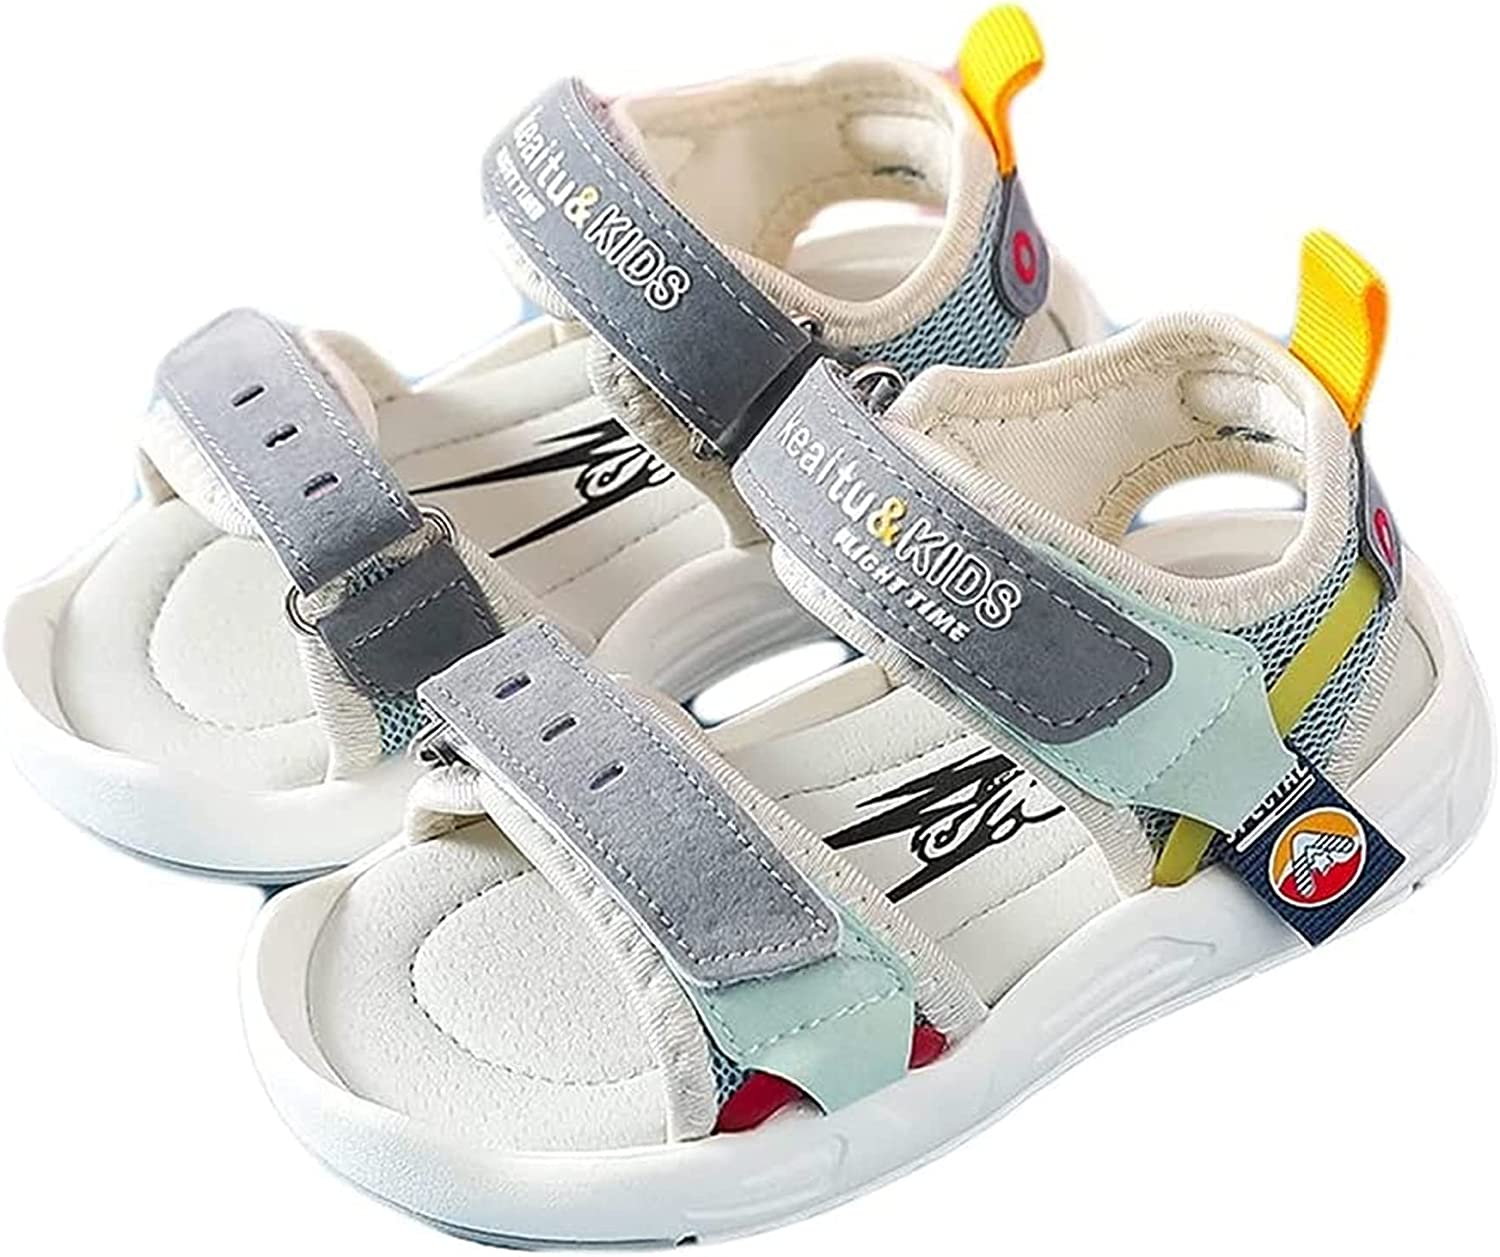 YIWANGO Baby Shoes Credence Sandals Soft-Soled Summer free shipping Non-Slip Children's